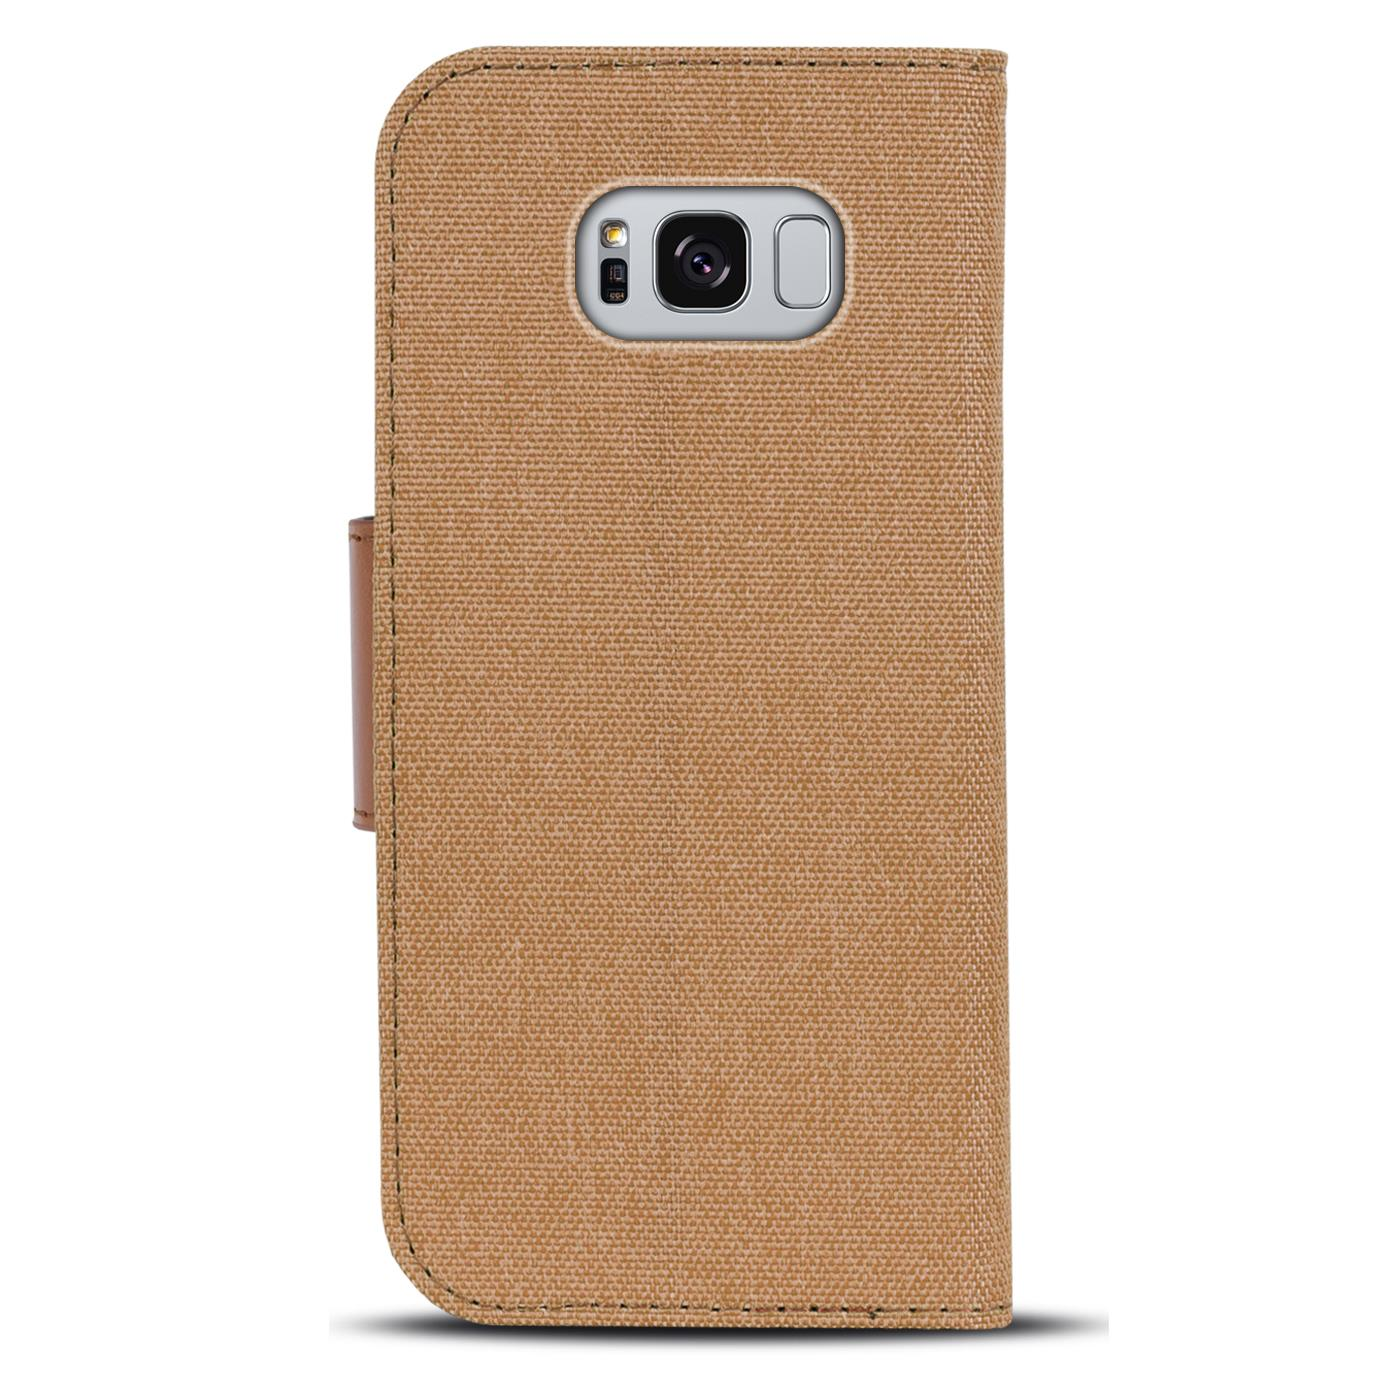 Samsung-Galaxy-S8-Plus-Phone-PU-Leather-Magnetic-Flip-Case-Wallet-Denim-Cover thumbnail 27